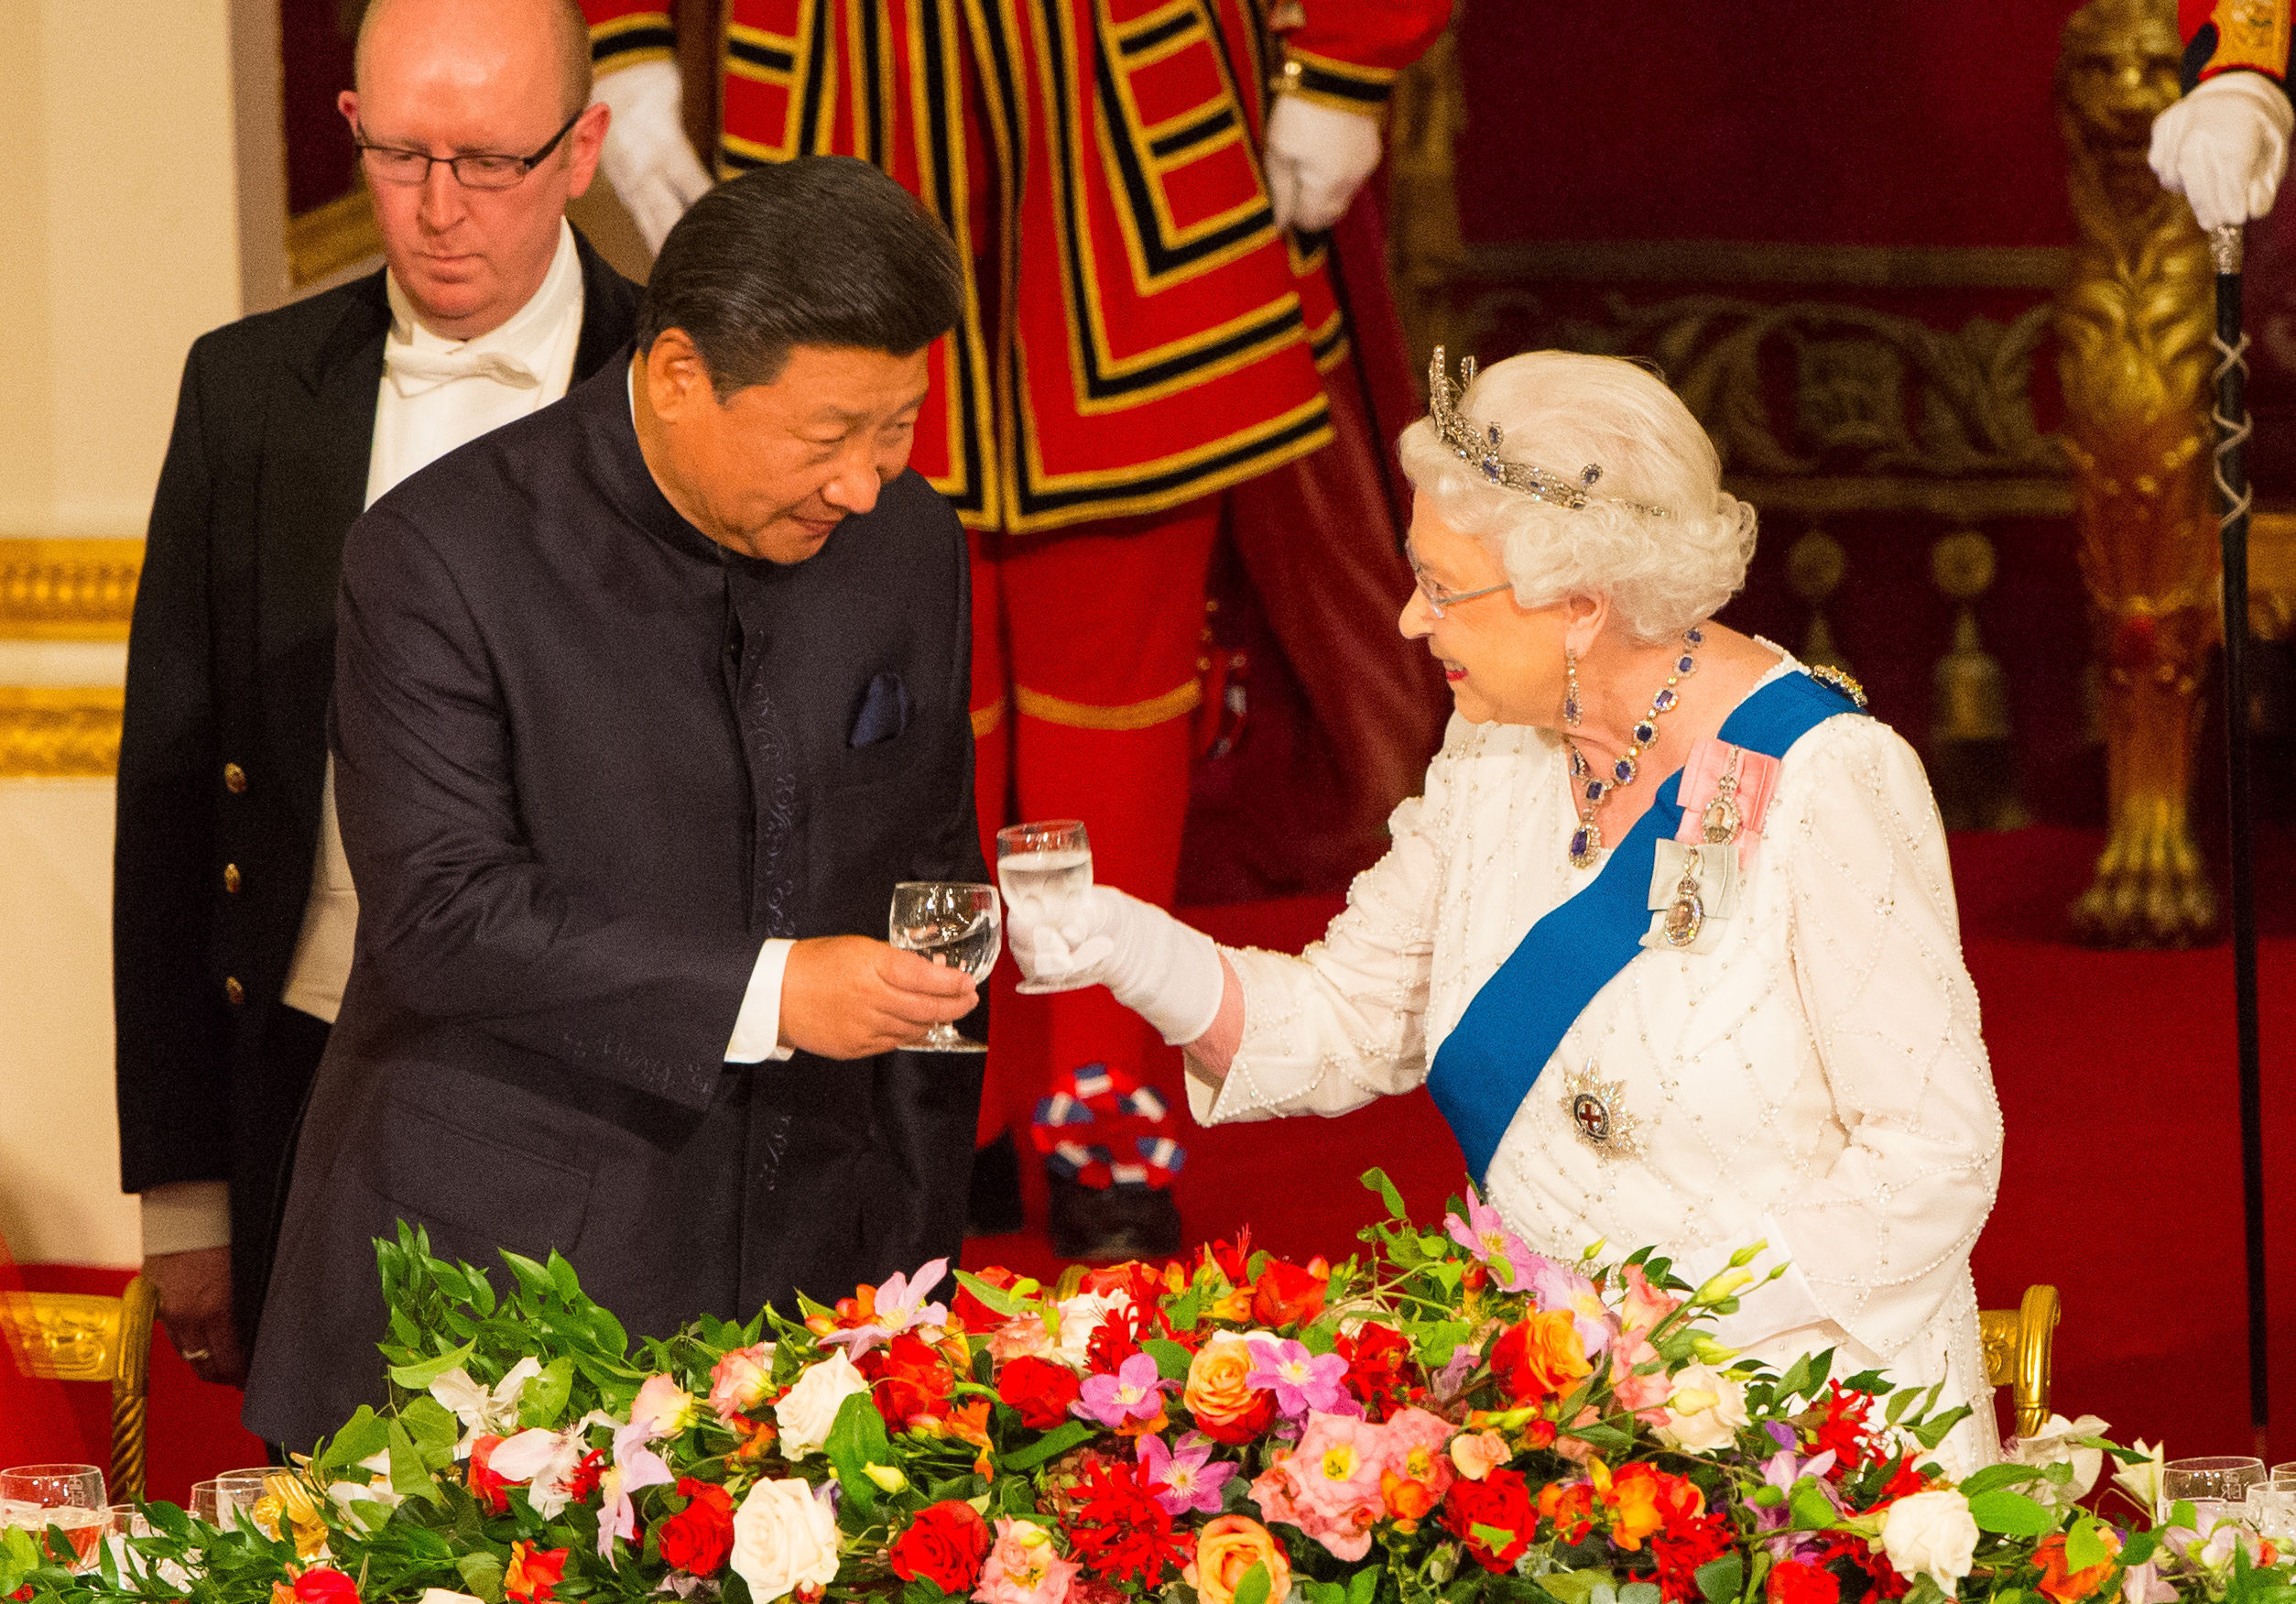 Chinese President Xi Jinping with Queen Elizabeth II at a state banquet at Buckingham Palace.